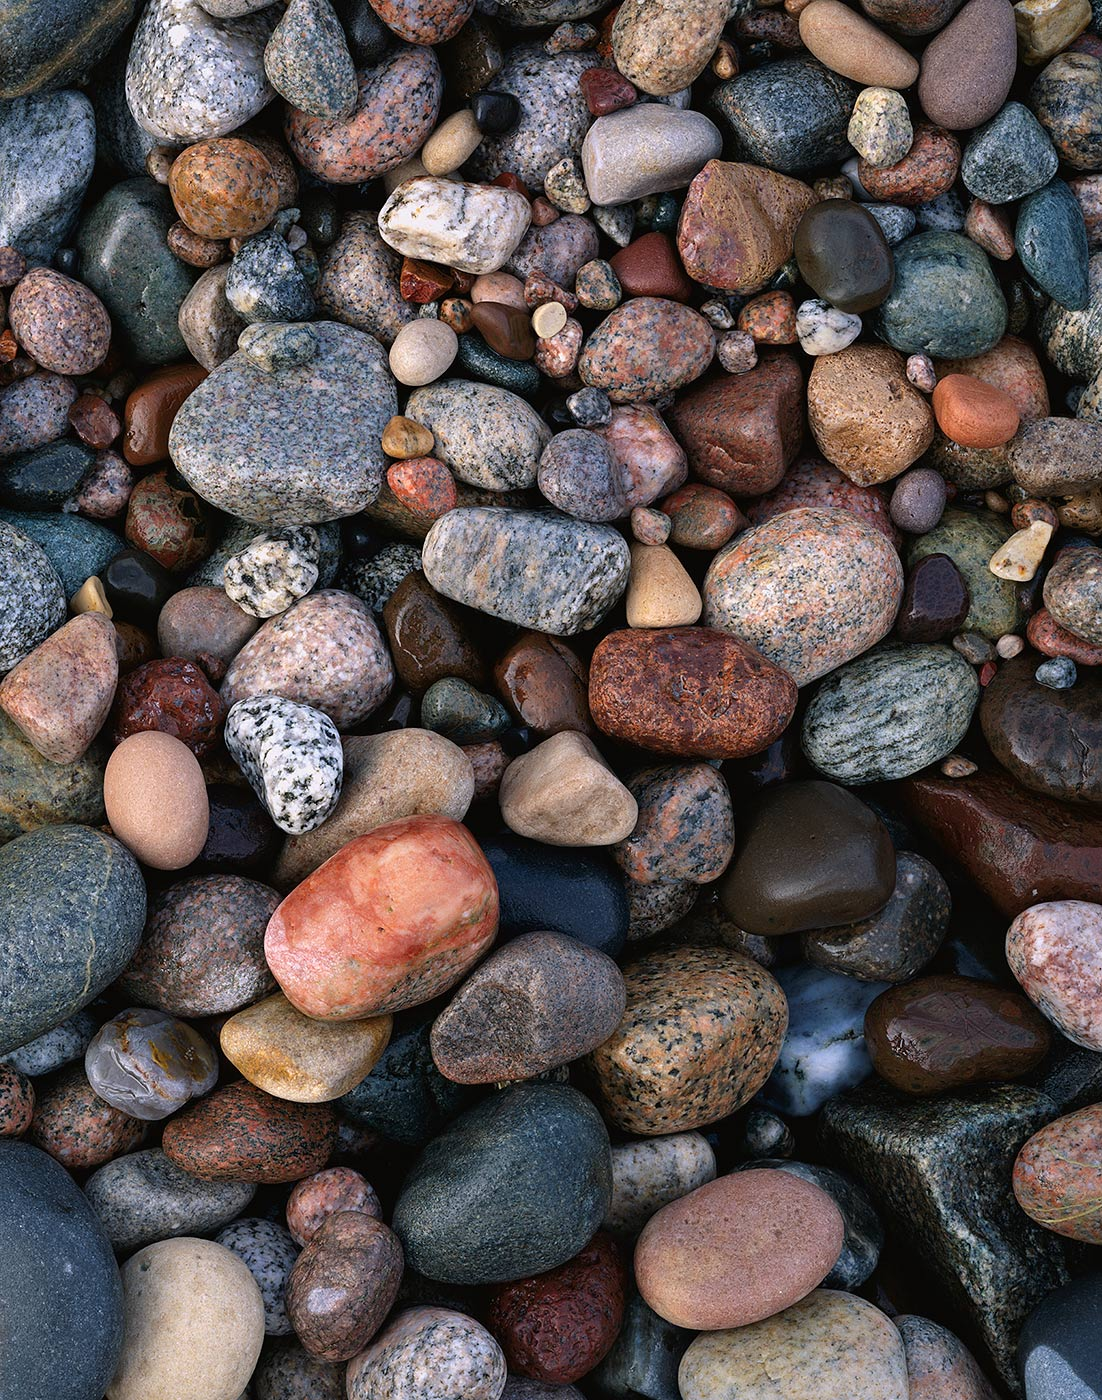 Image of Pebbles & Stones, Pictured Rocks National Lakeshore, Michigan